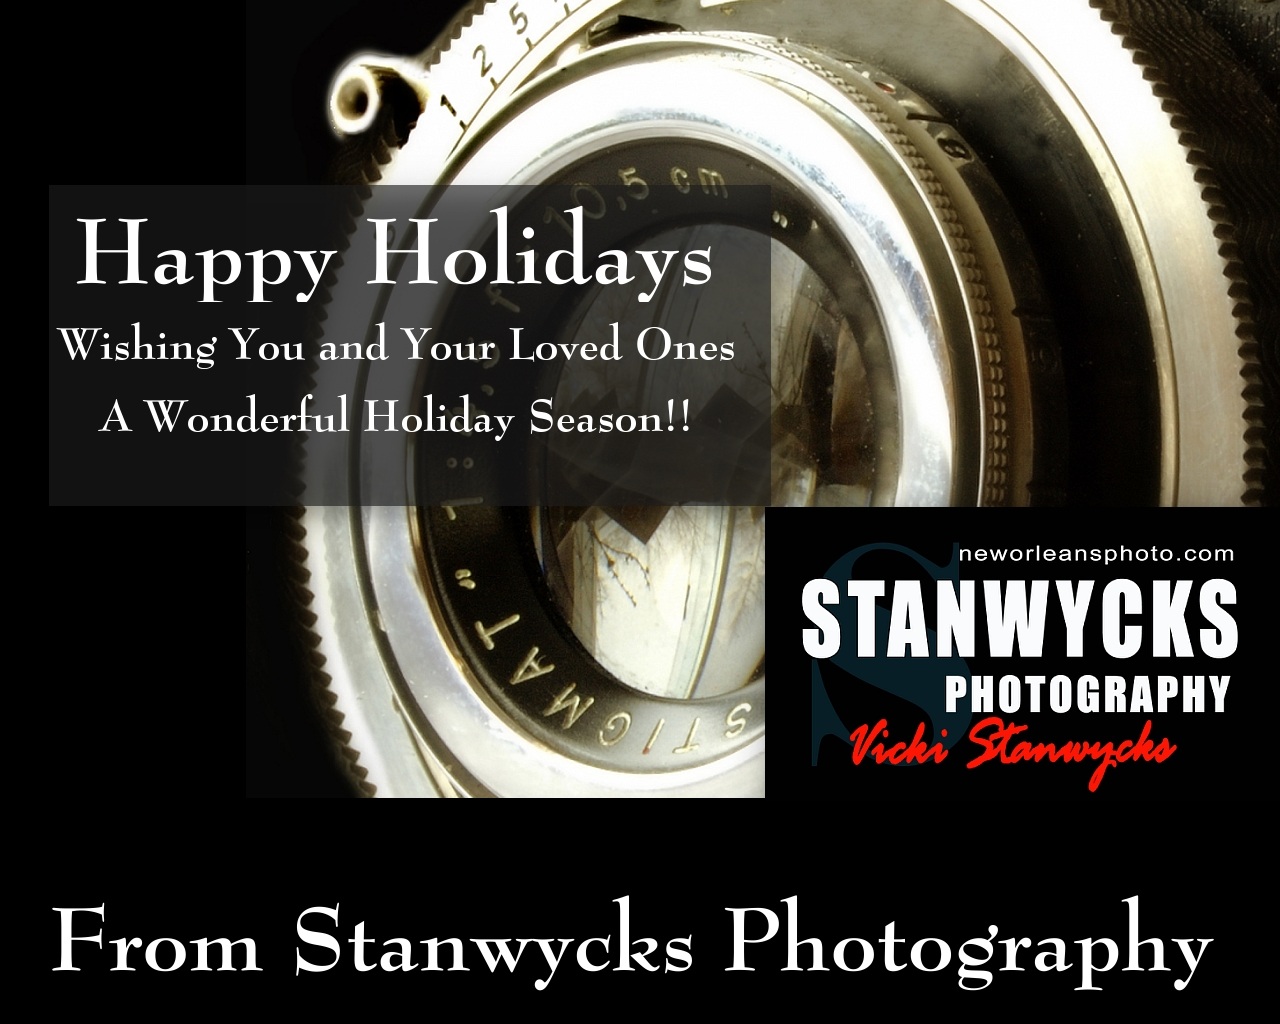 Holiday Web Pages 005 (Sheet 5)